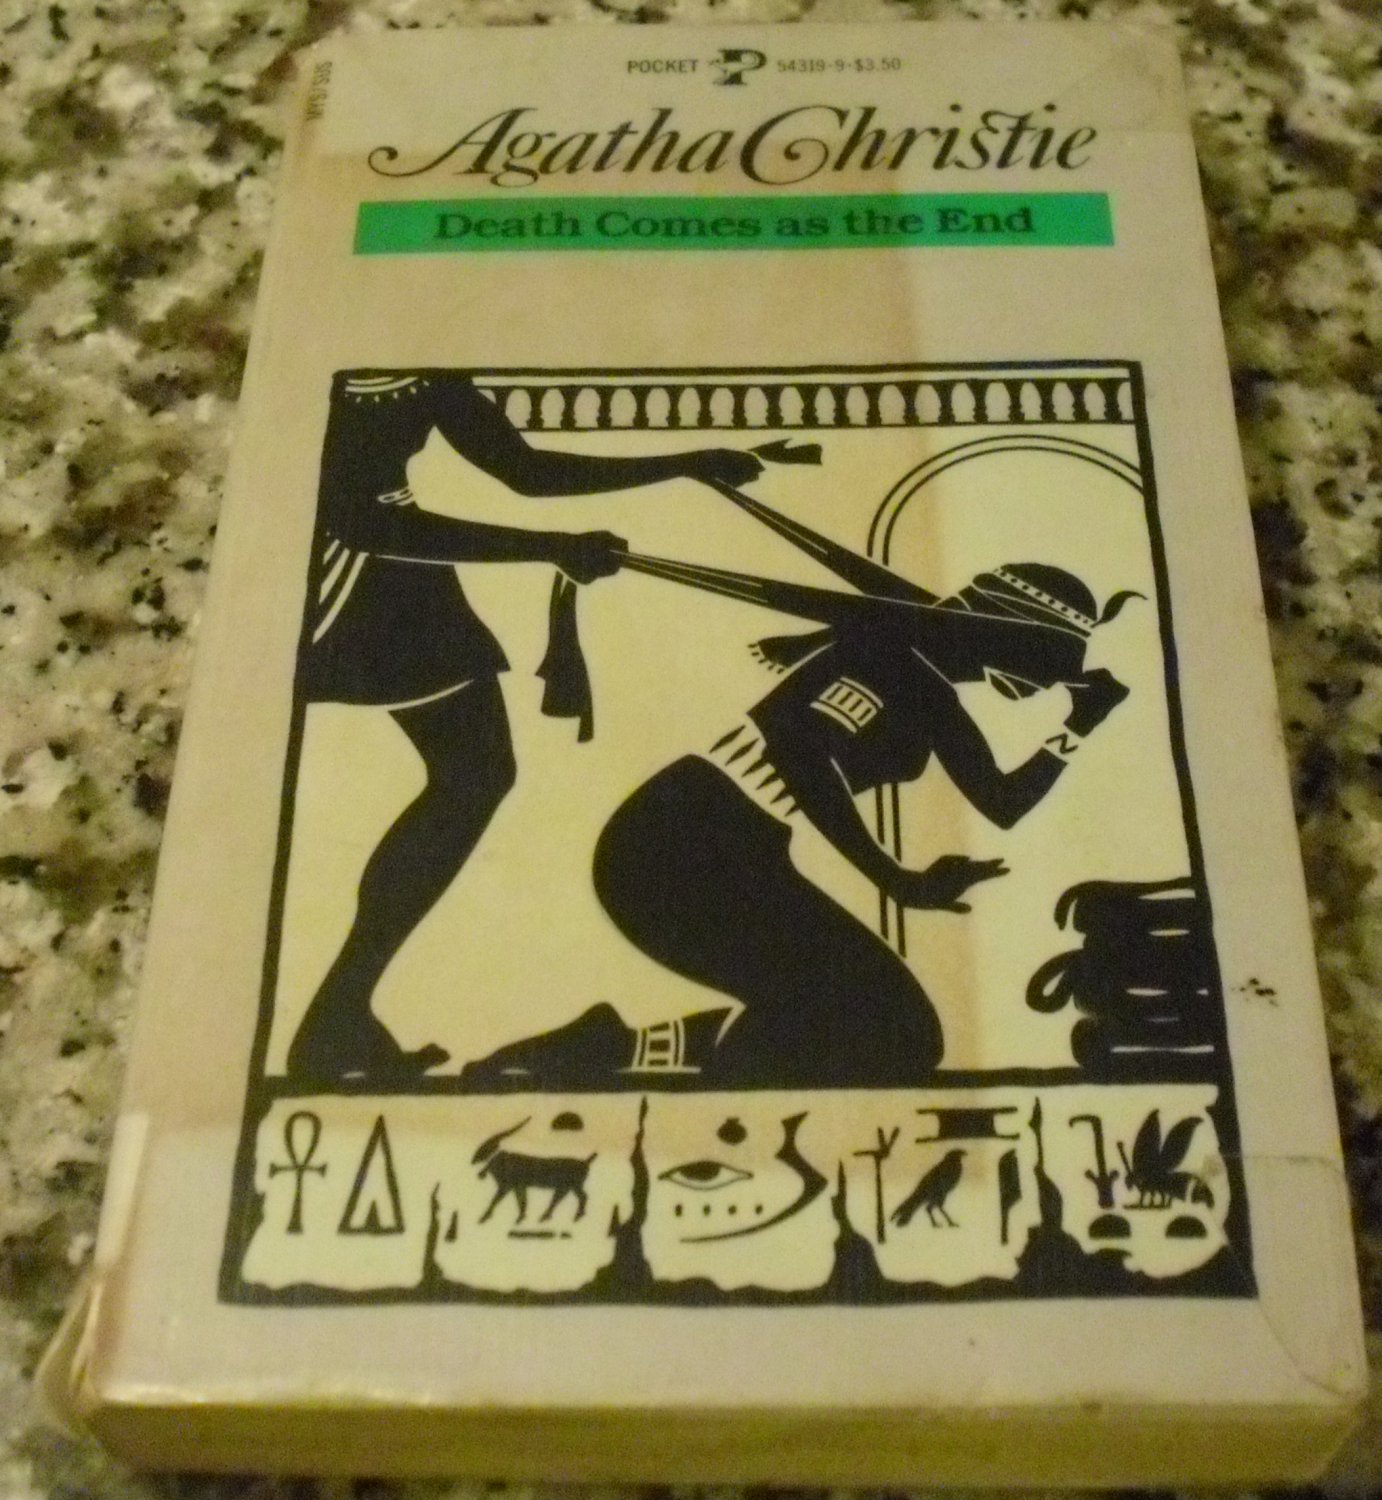 Death Comes As the End by Agatha Christie (Nov 2, 1984)